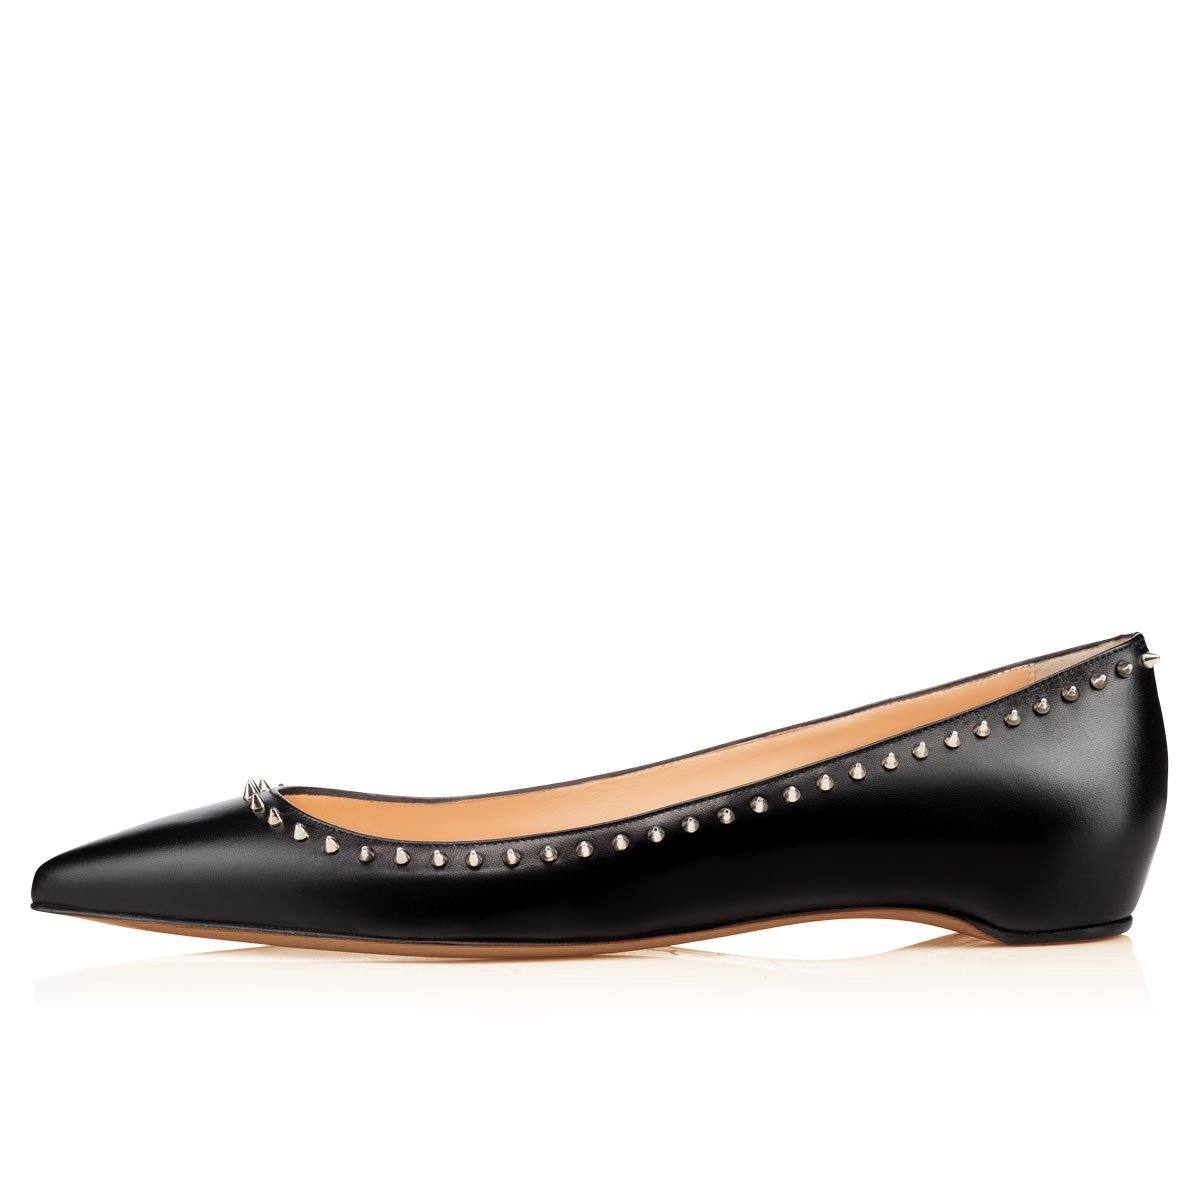 Mermaid Women's Shoes Pointed Toe Spiked Rivets Comfortable Flats B071D1KDX3 US 8 Feet length 9.513